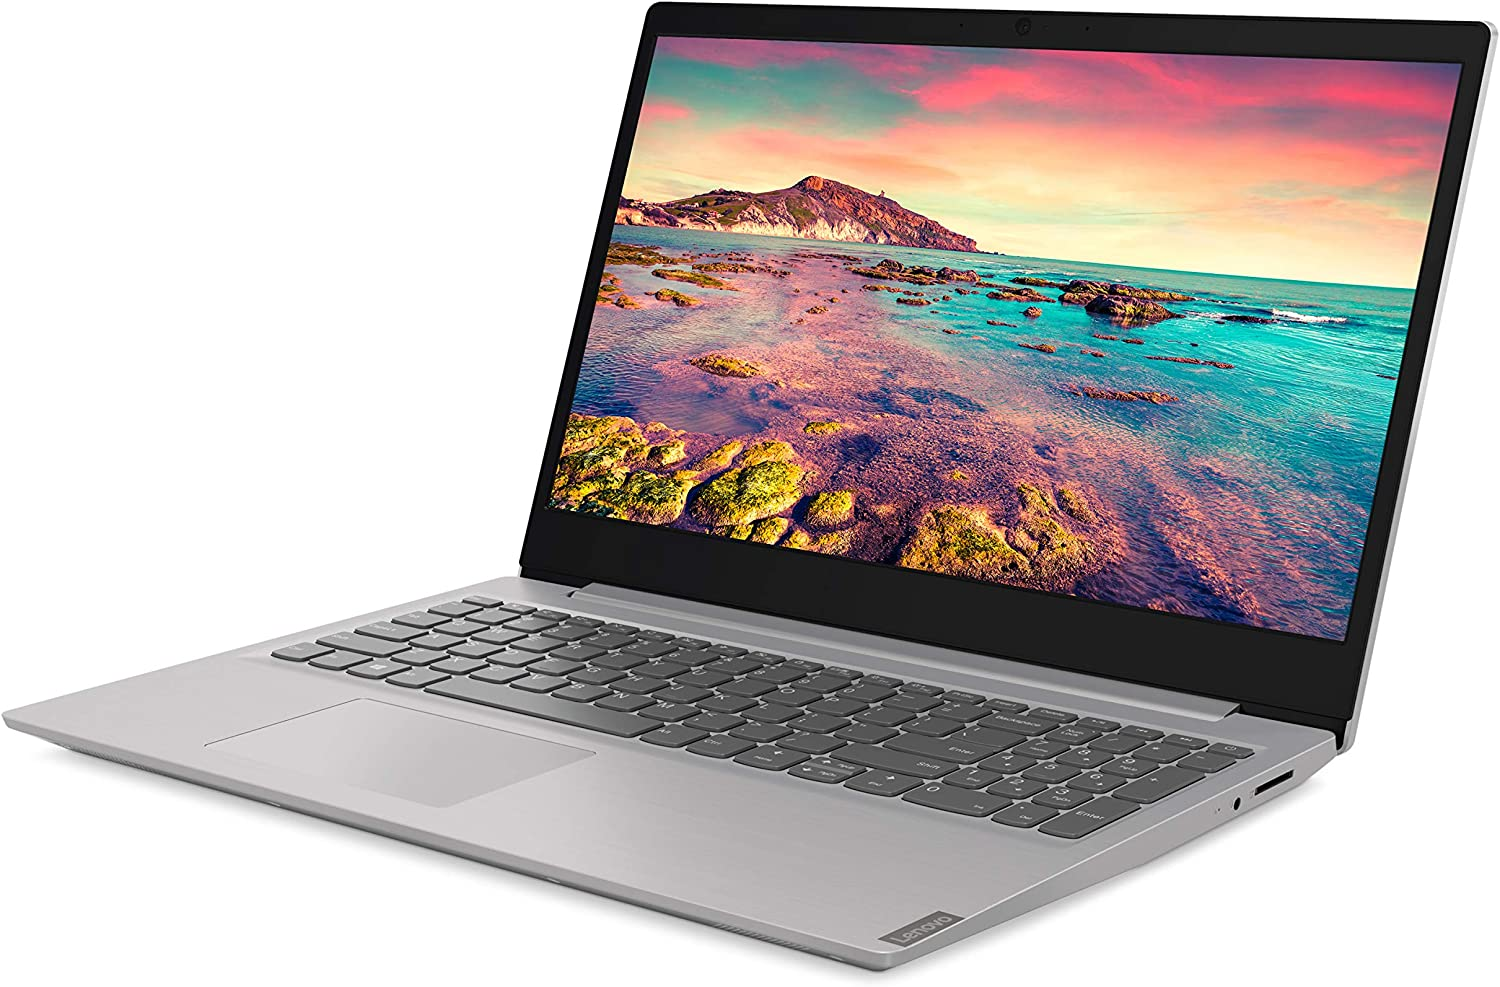 "2020 Newest Lenovo IdeaPad 15.6"" HD Laptop PC: AMD Dual Core A4-9125, 16GB RAM, 128GB SSD, WiFi, Bluetooth, Webcam, HDMI, Dolby Audio, Windows 10"